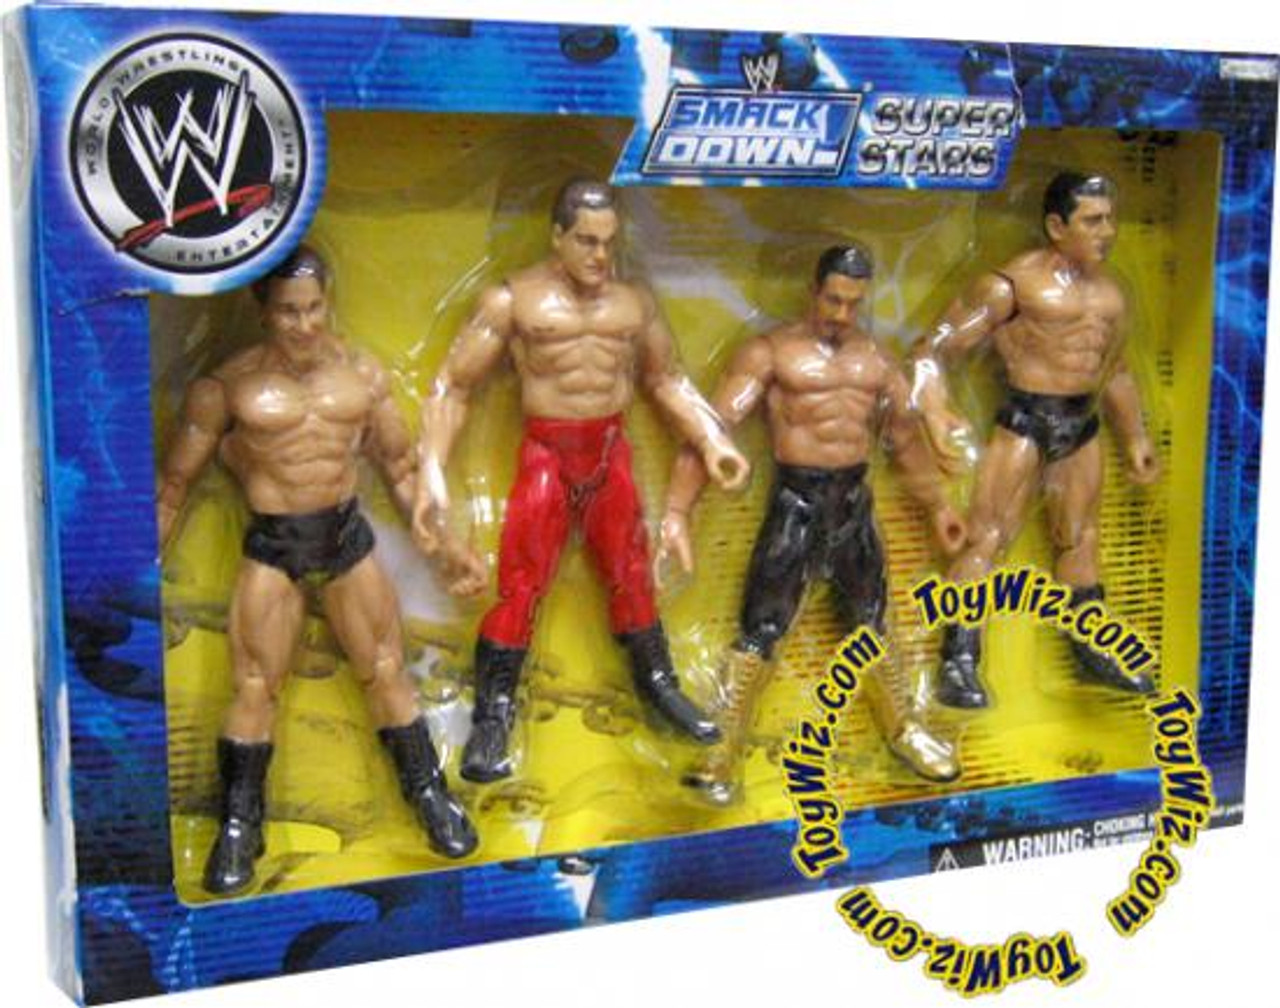 WWE Wrestling Exclusives Smack Down Super Stars Exclusive Action Figure 4-Pack